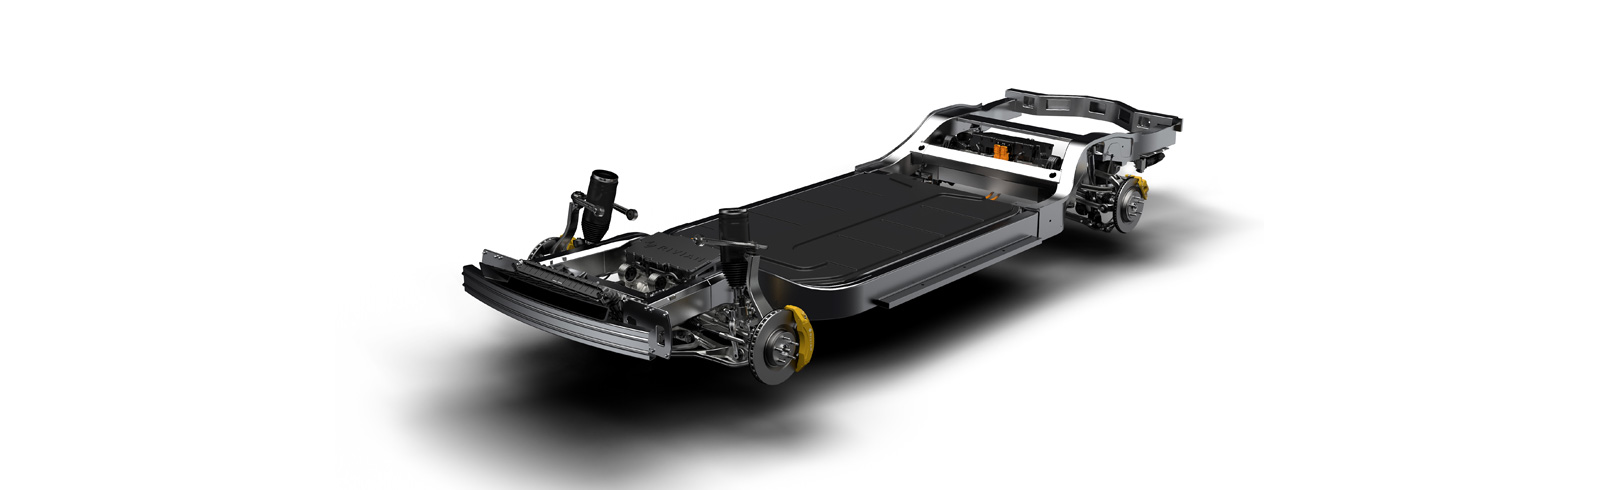 Samsung SDI will supply batteries for the Rivian R1T and Rivian R1S